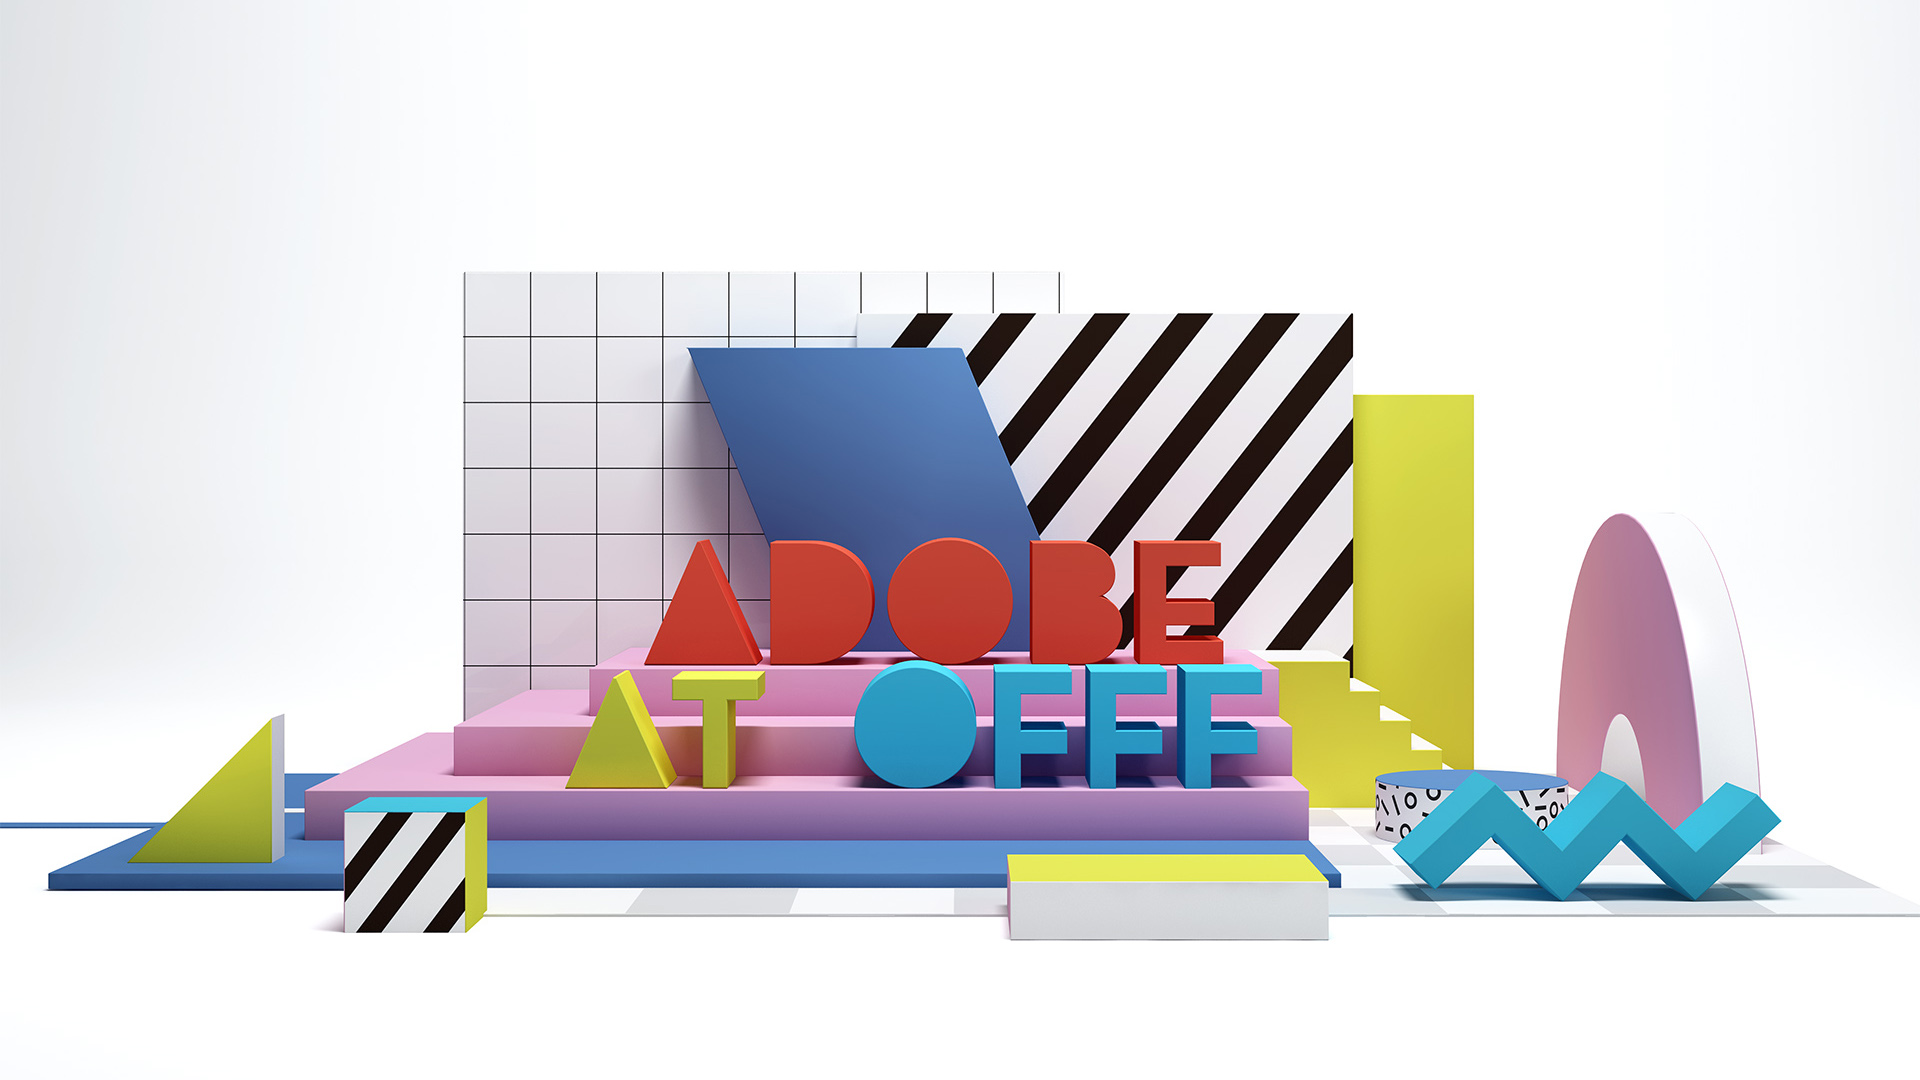 ADOBE AT OFFF BRANDING- VISUAL ANIMATION